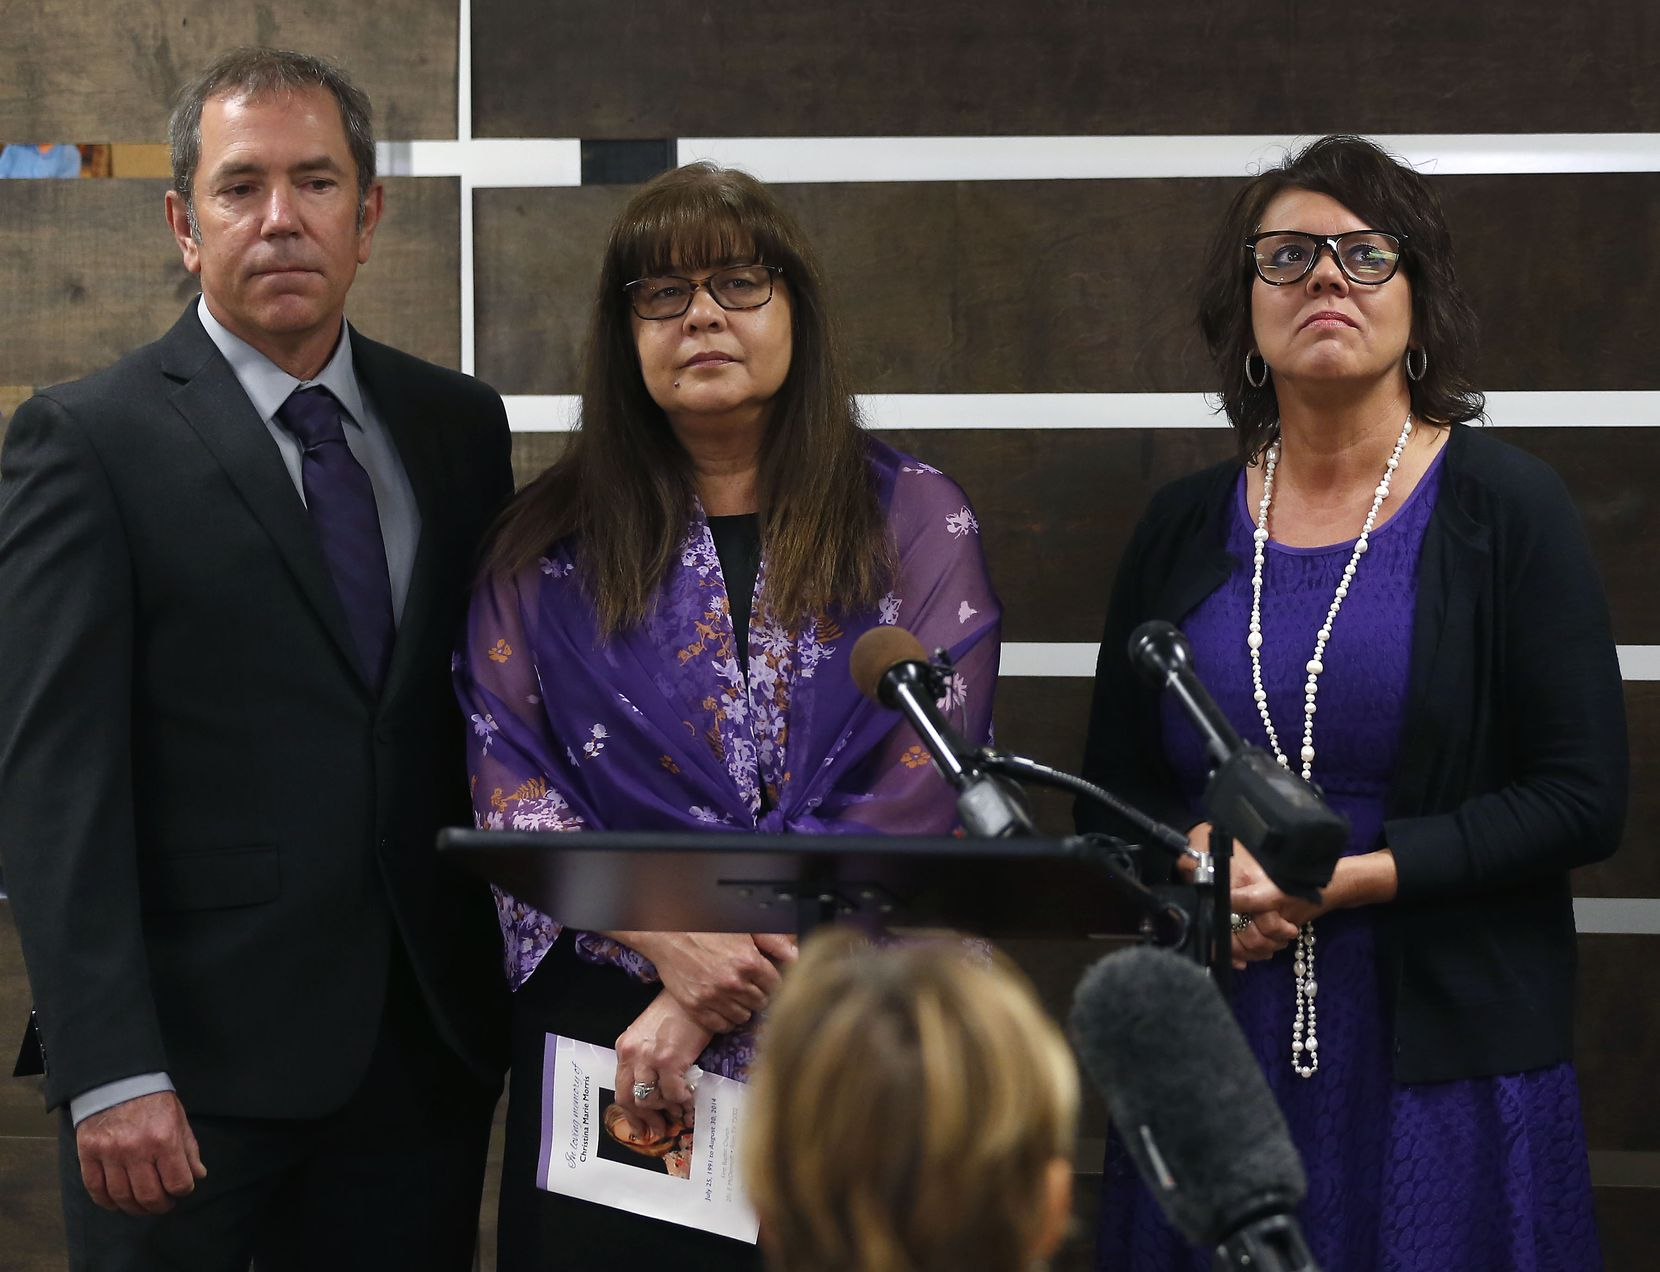 From left: Mark Morris, Anna Morris and Jonni Hare attend a news conference before the memorial service for their daughter Christina Morris at First Baptist Church in Allen.